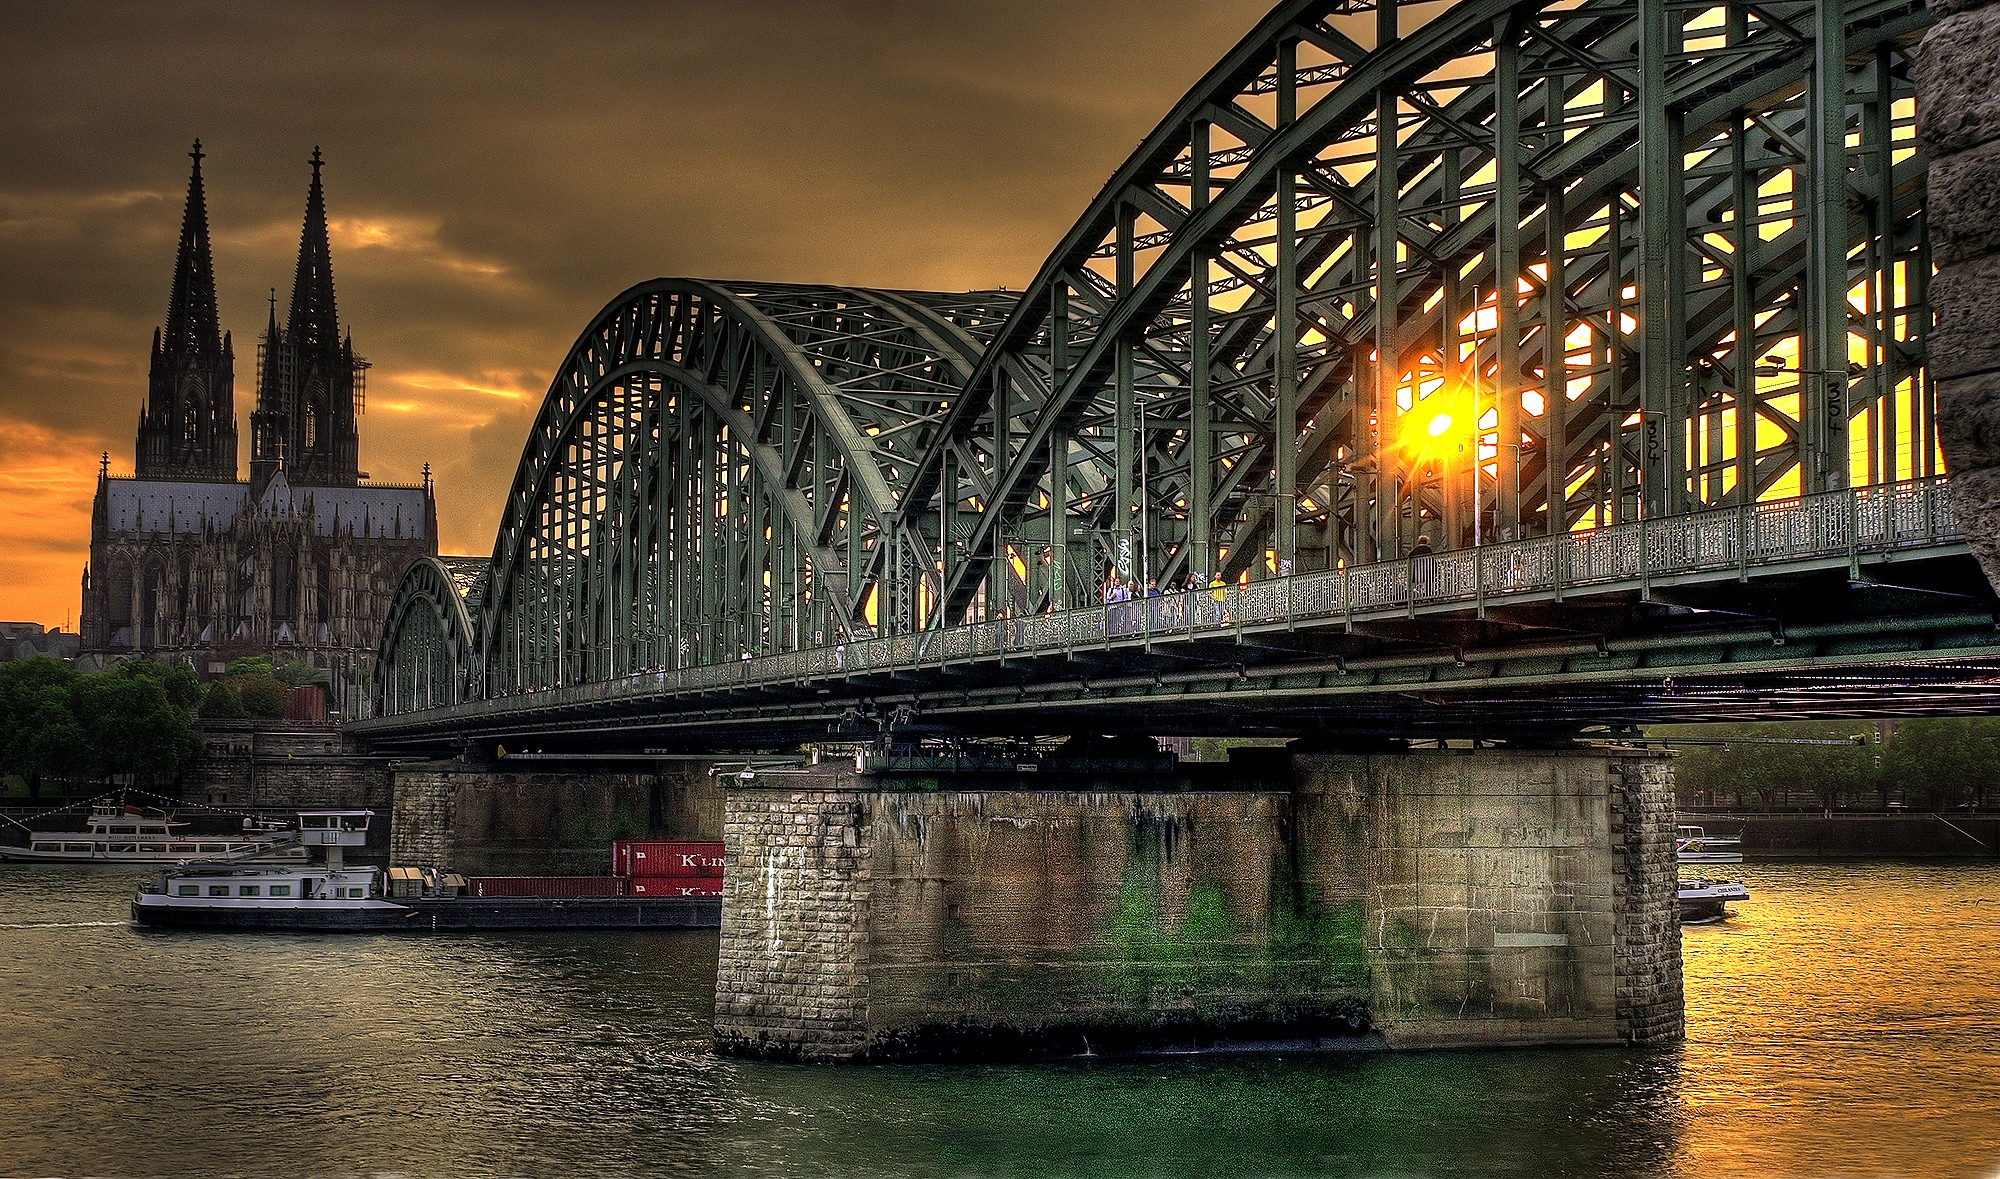 Hohenzollern Railway Bridge in downtown Cologne - photo by Thomas Depenbusch (Depi) under CC BY 2.0